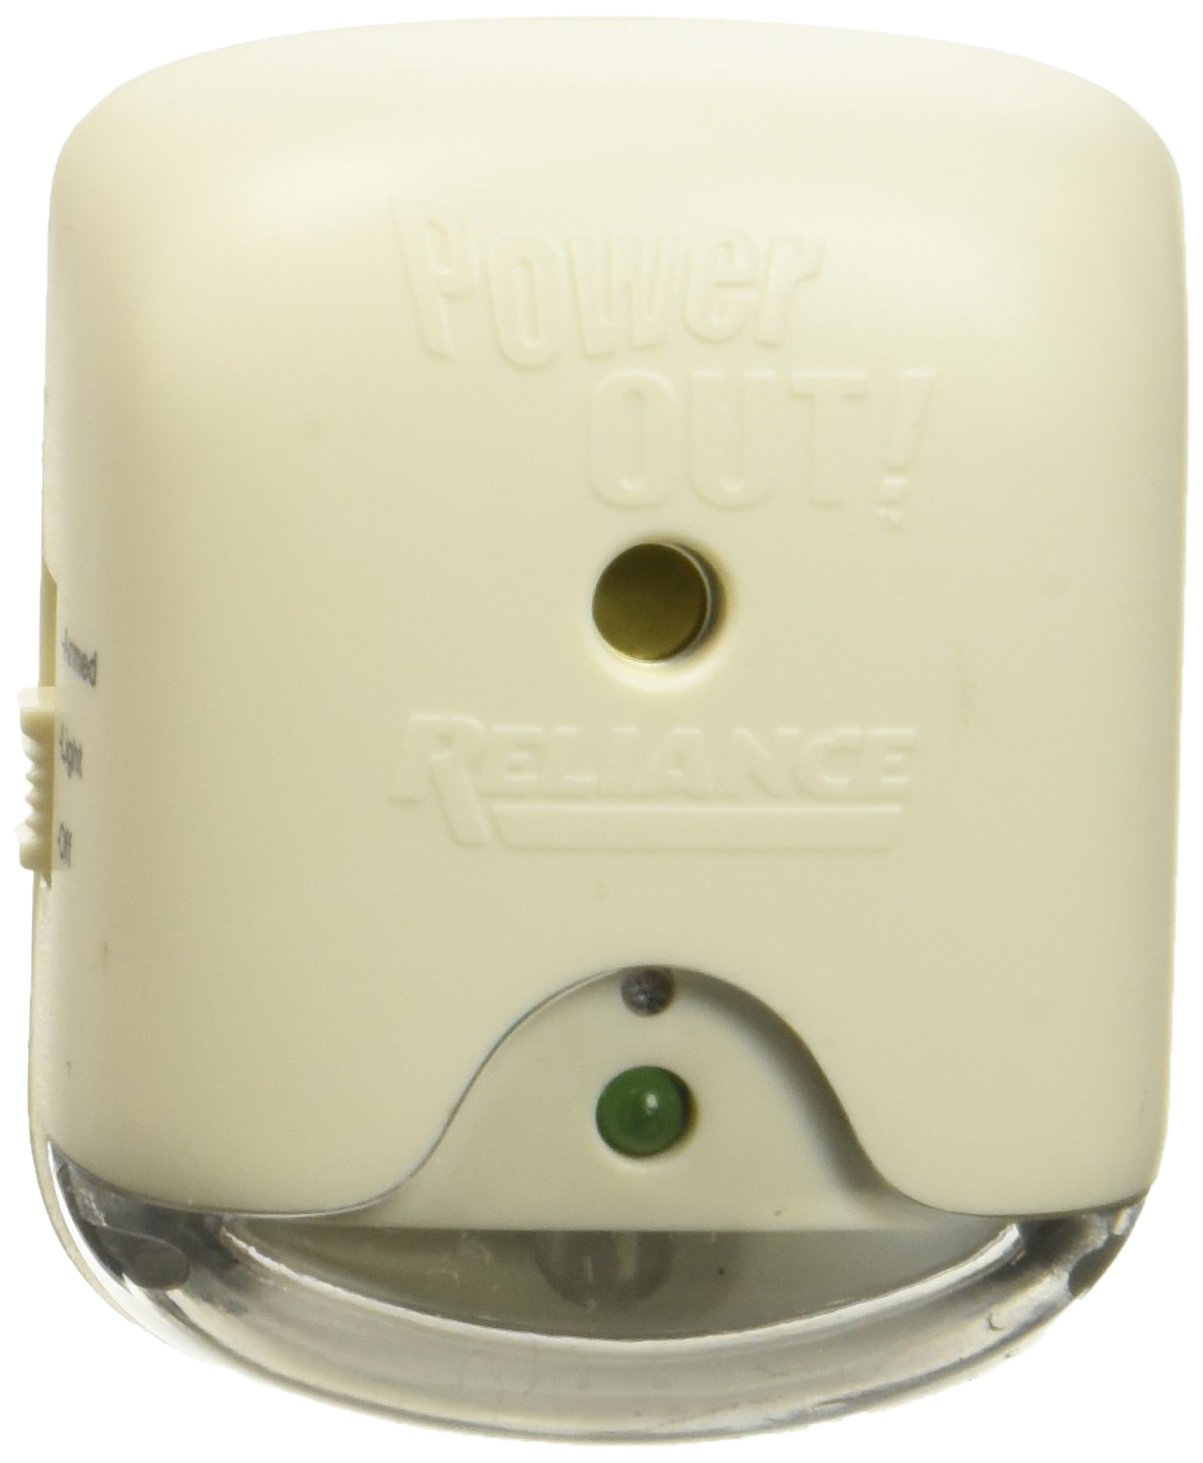 Reliance Control Corporation POWER FAIL LIGHT W/ALARM by RELIANCE CONTROLS MfrPartNo THP207M 1 Multi